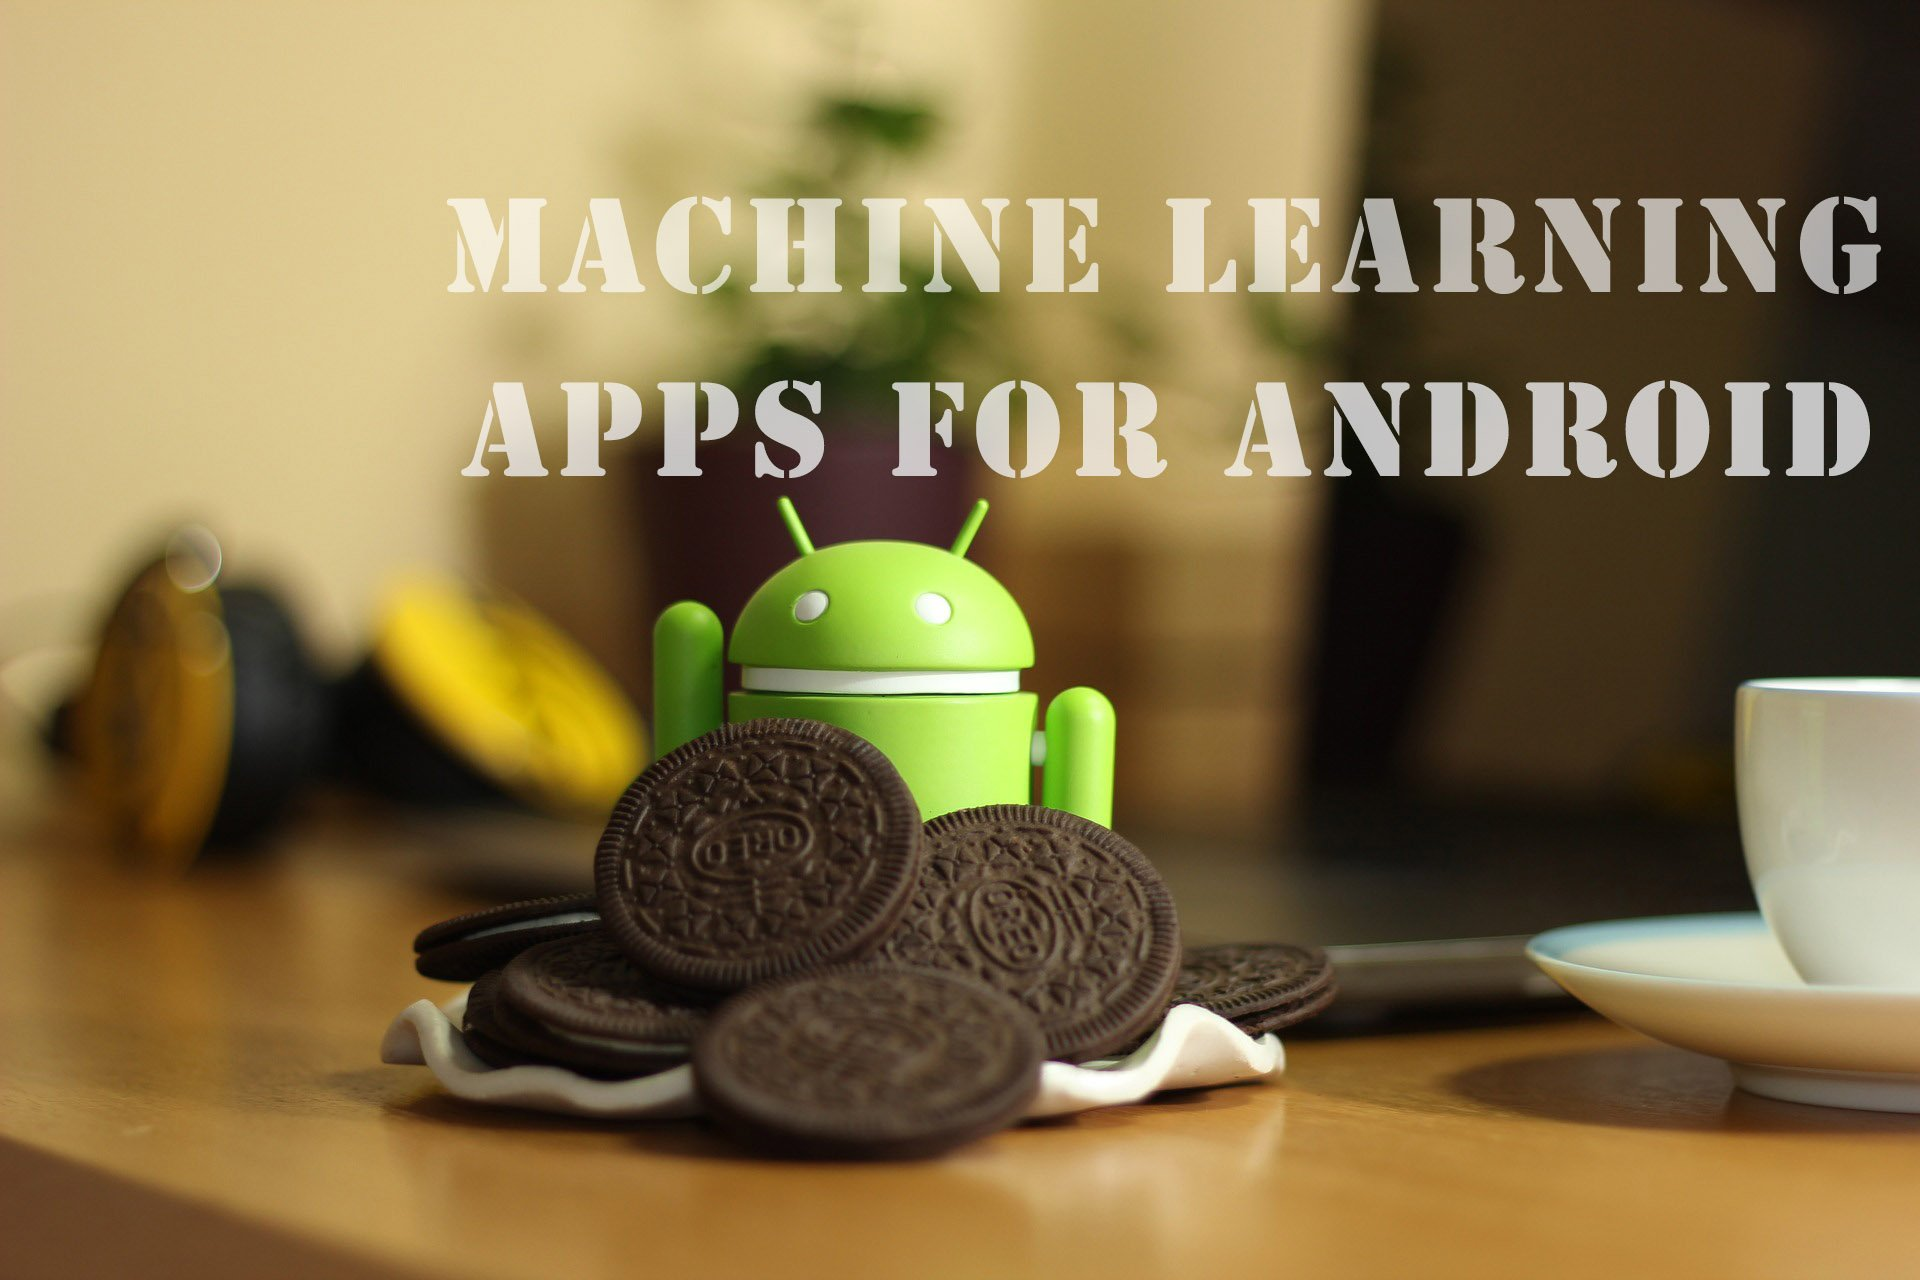 Machine Learning Apps for Android